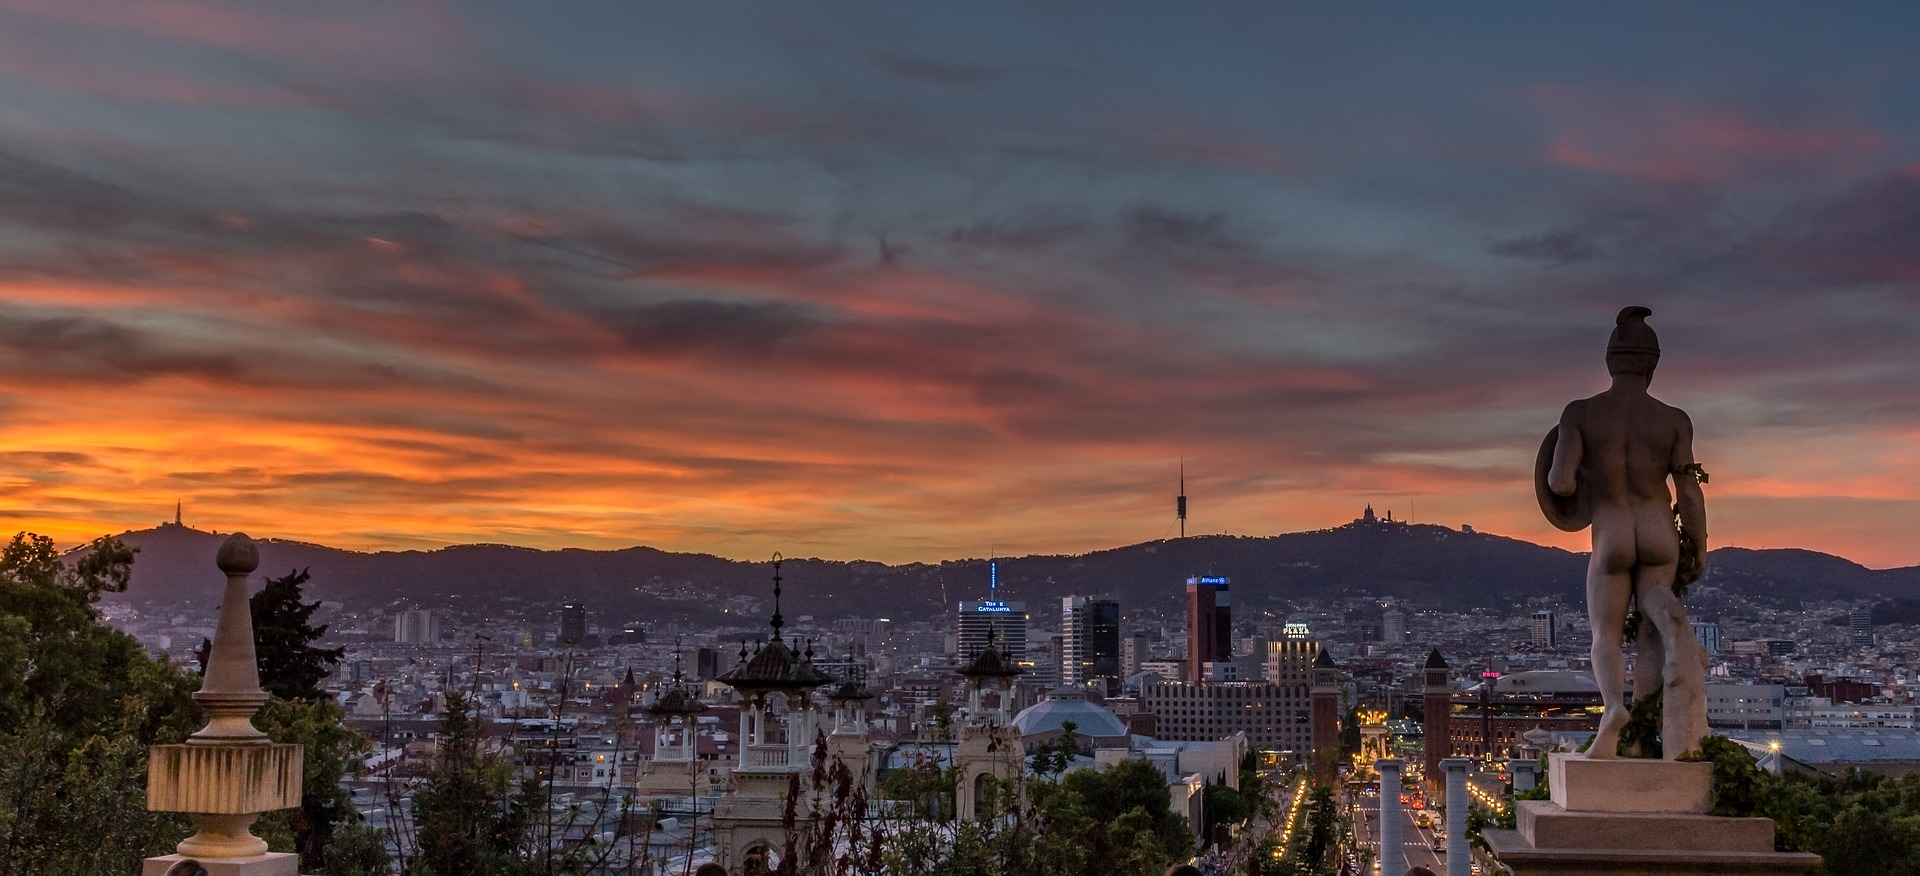 Sunset over Barcelona, Spain